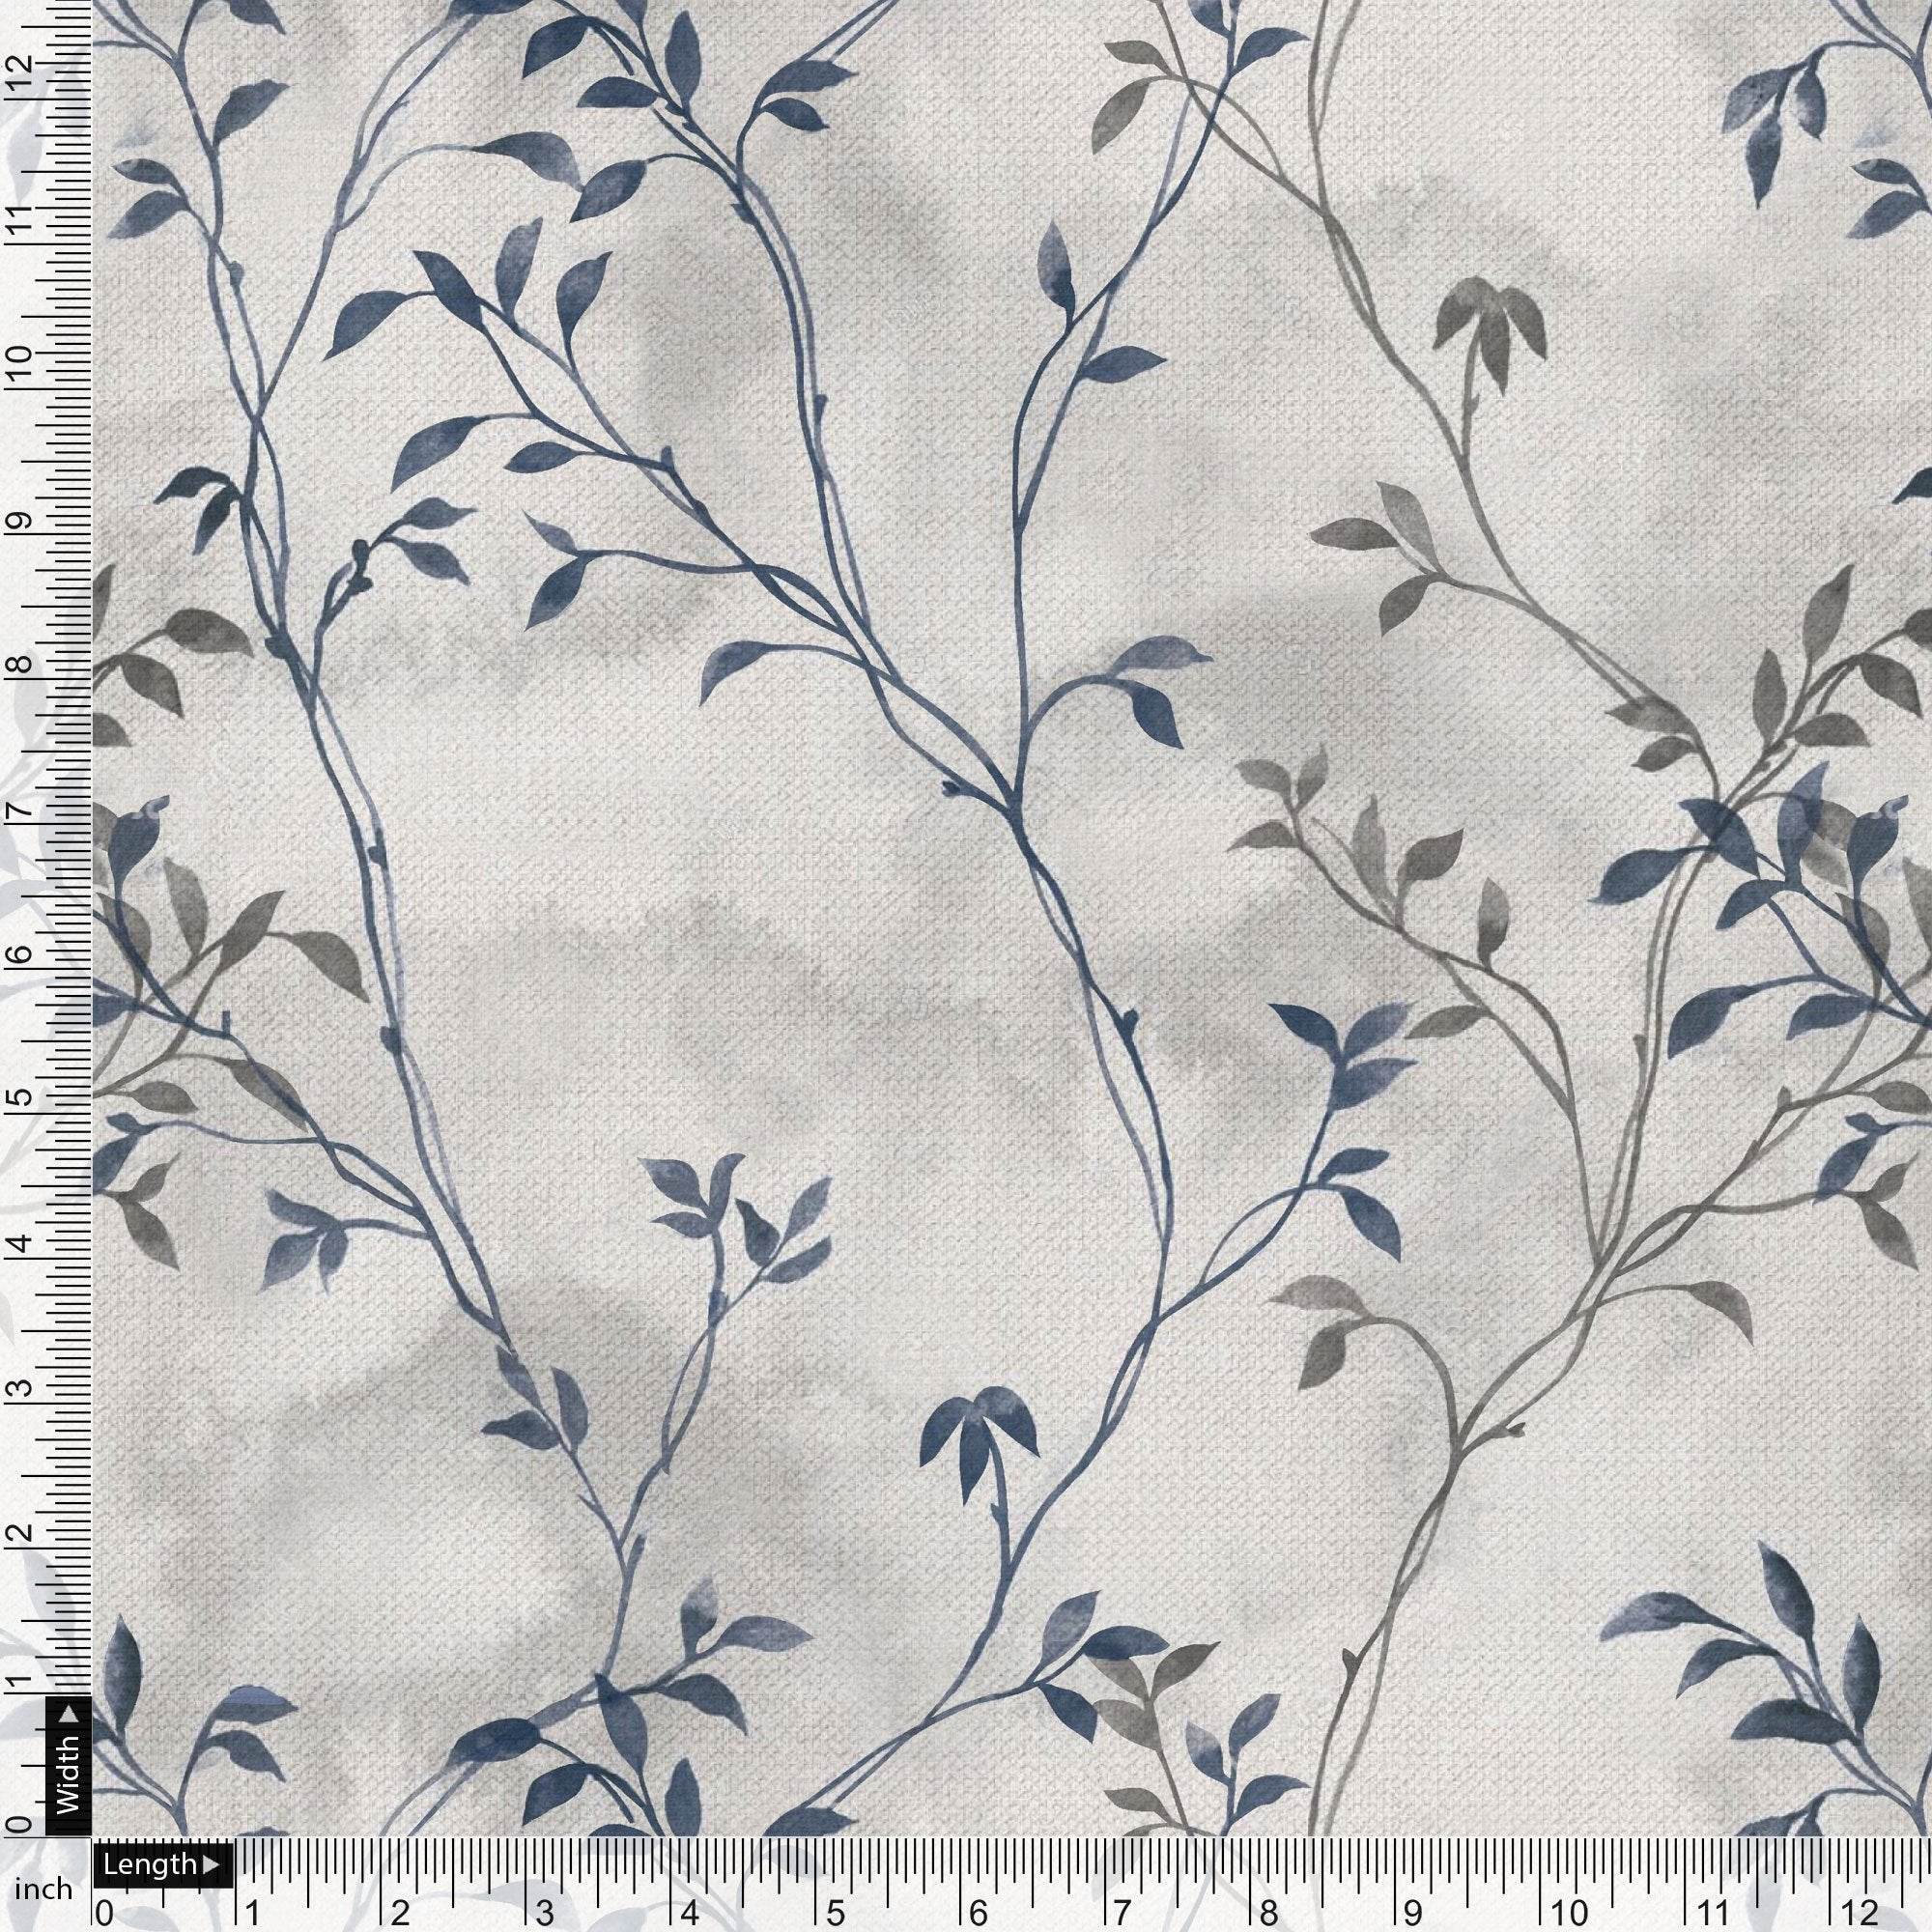 Leaves Vines Over Dusty Grey Base Digital Printed Fabric - FAB VOGUE Studio. Shop Fabric @ www.fabvoguestudio.com